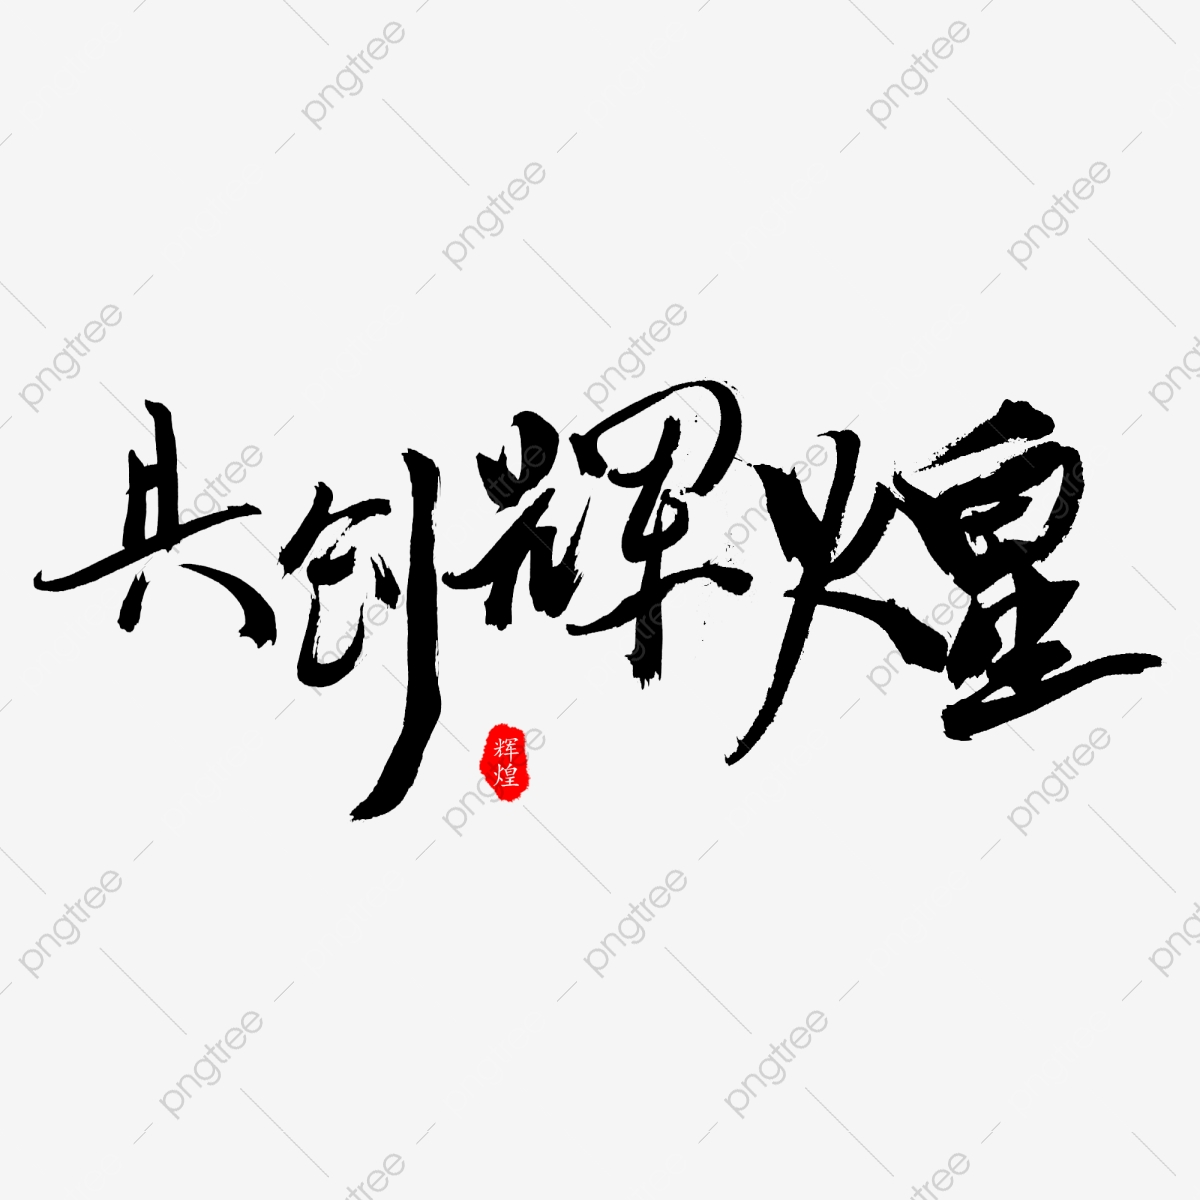 Recruiting The Chinese Character Black Of Art Word To Create